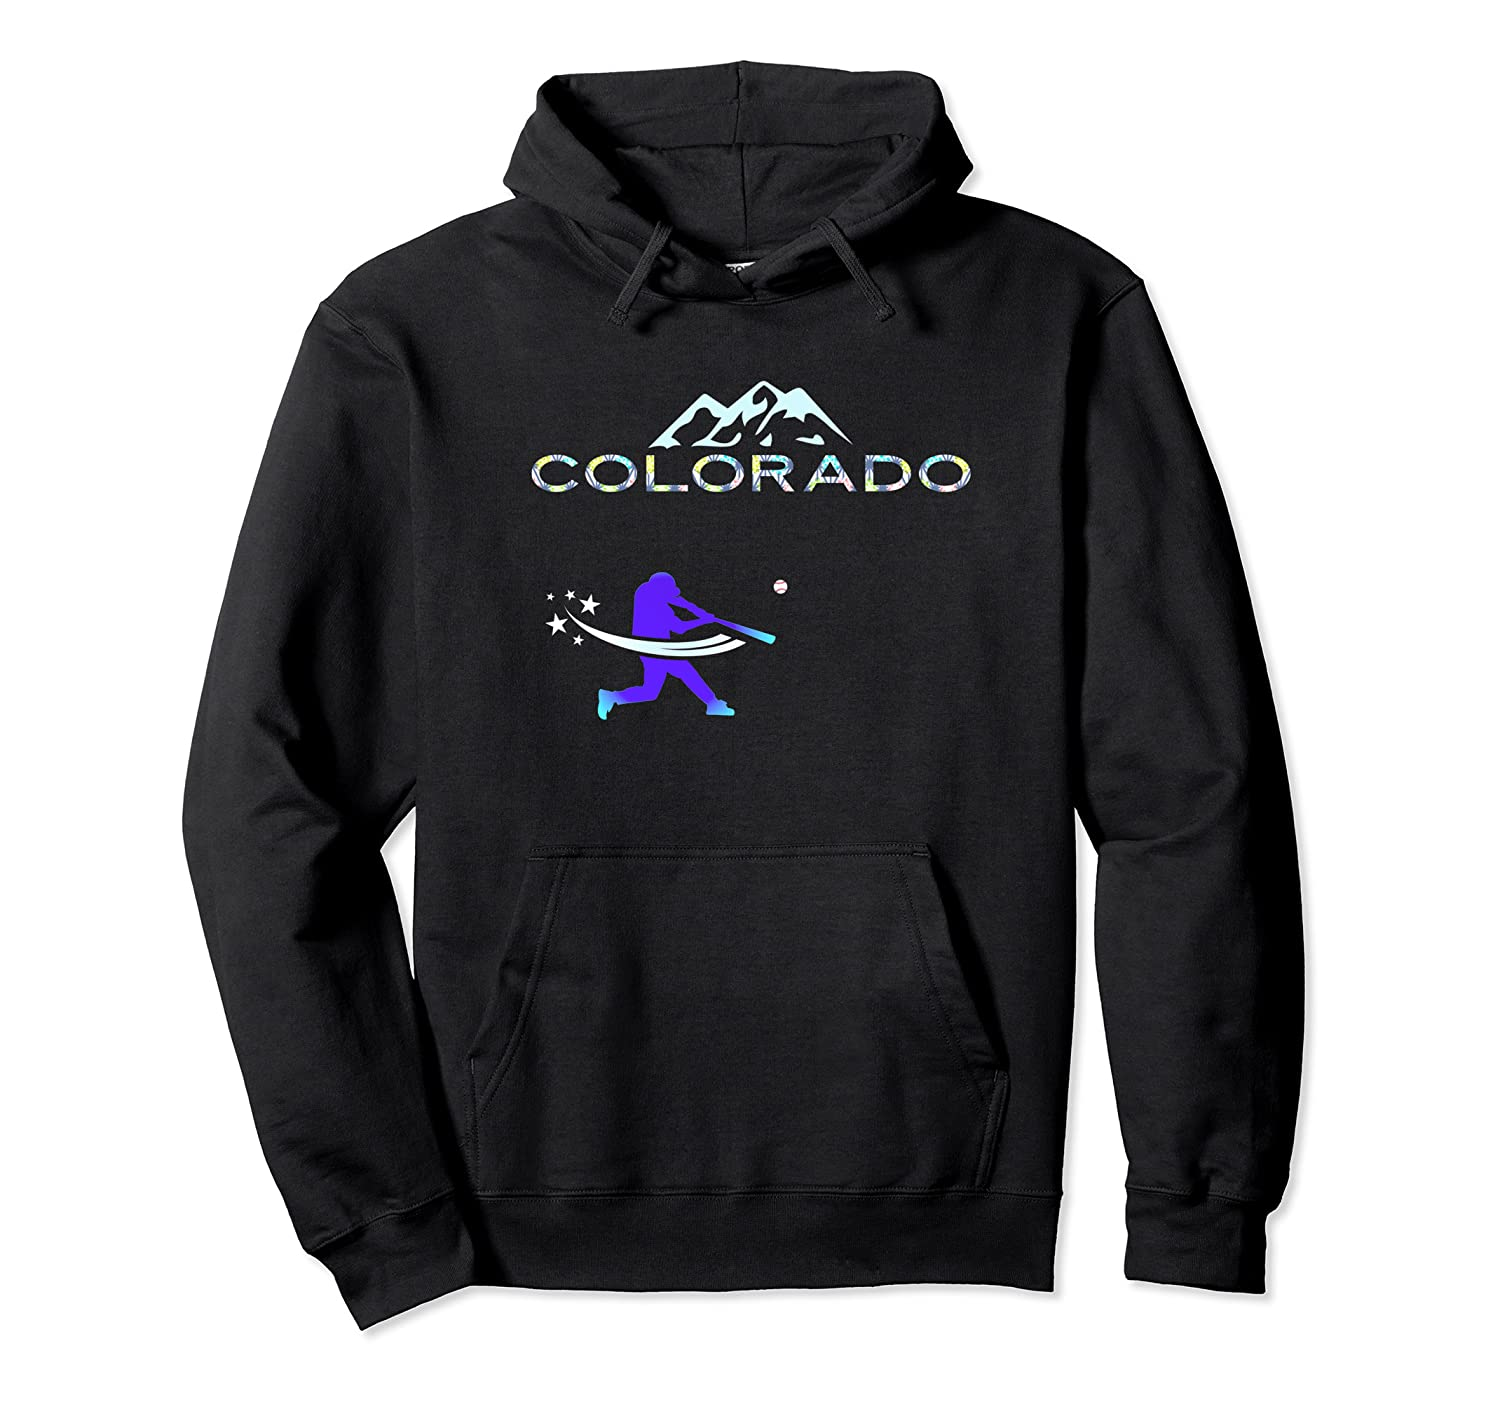 Colorado Rocky Mountain Hometown Baseball Player Shirts Unisex Pullover Hoodie